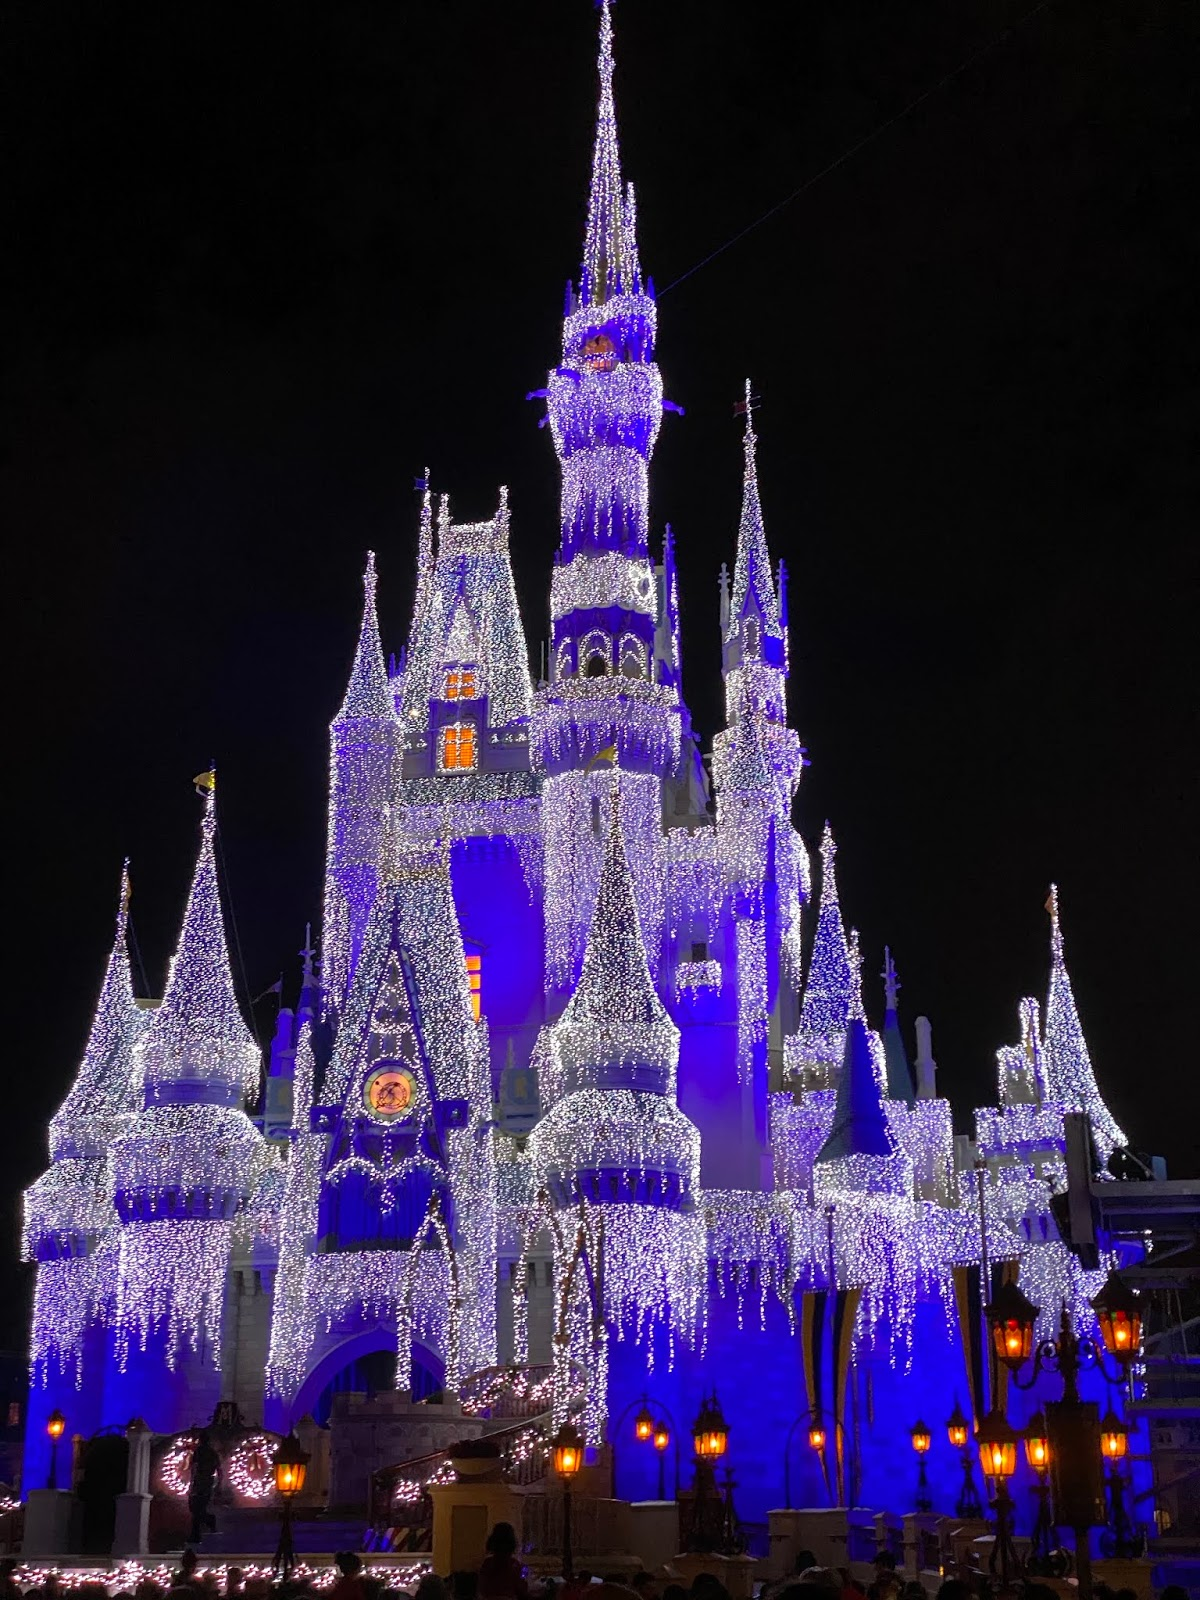 Ultimate Disney Christmas Package 2020 jillgg's good life (for less) | a west michigan style blog: Disney